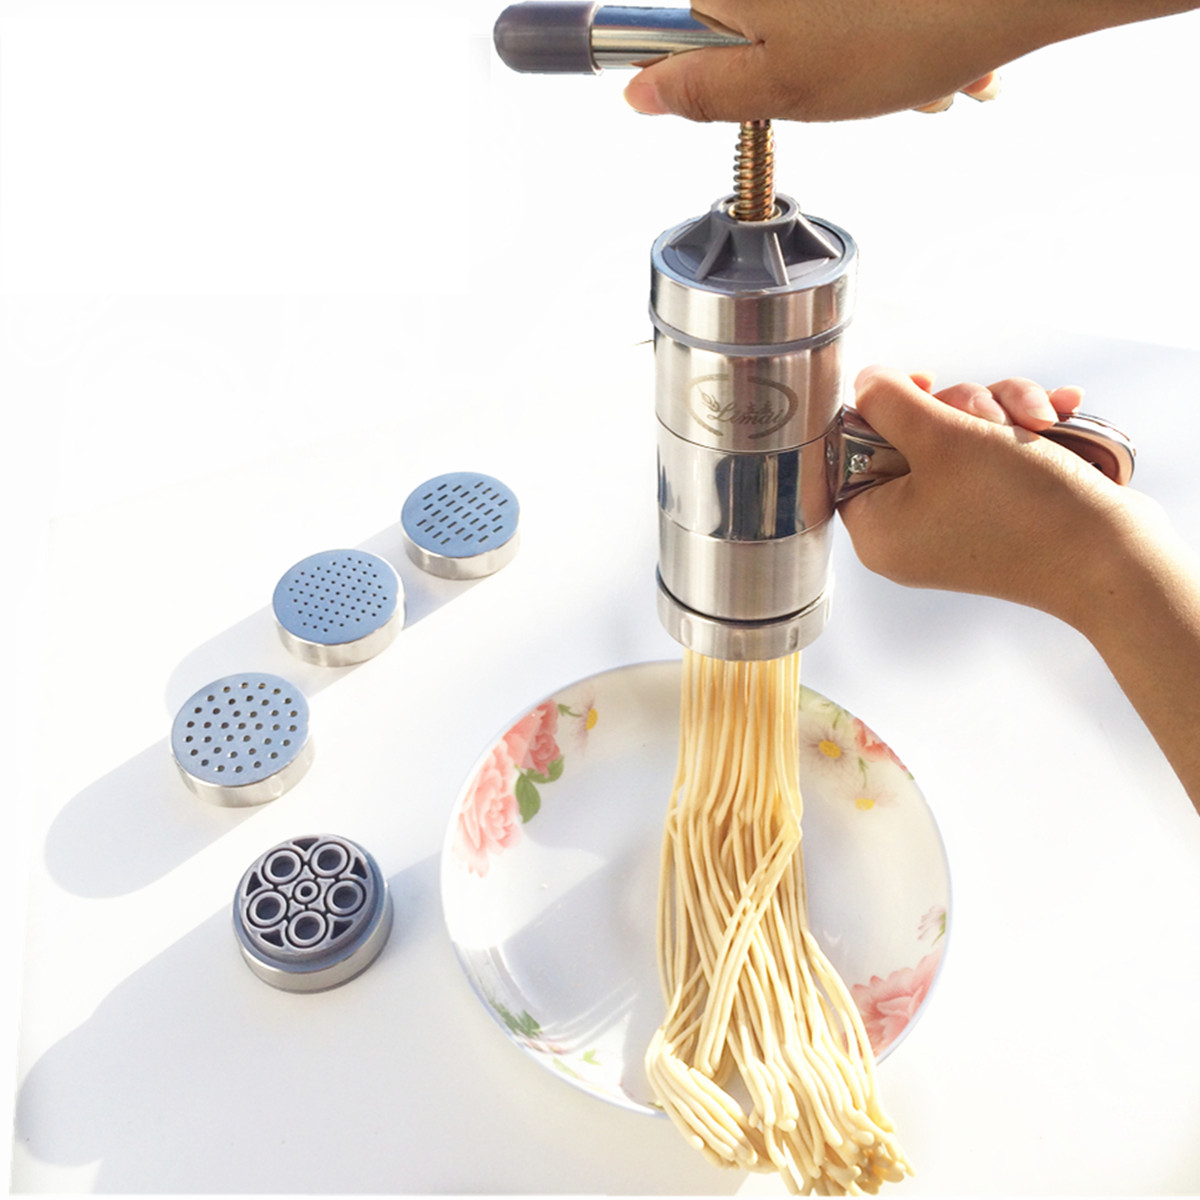 Stainless Steel Pasta Noodle Maker Machine Cutter For Fresh Spaghetti Kitchen Pastry Noddle Making Tools Vegetable Fruit Juicer(China (Mainland))